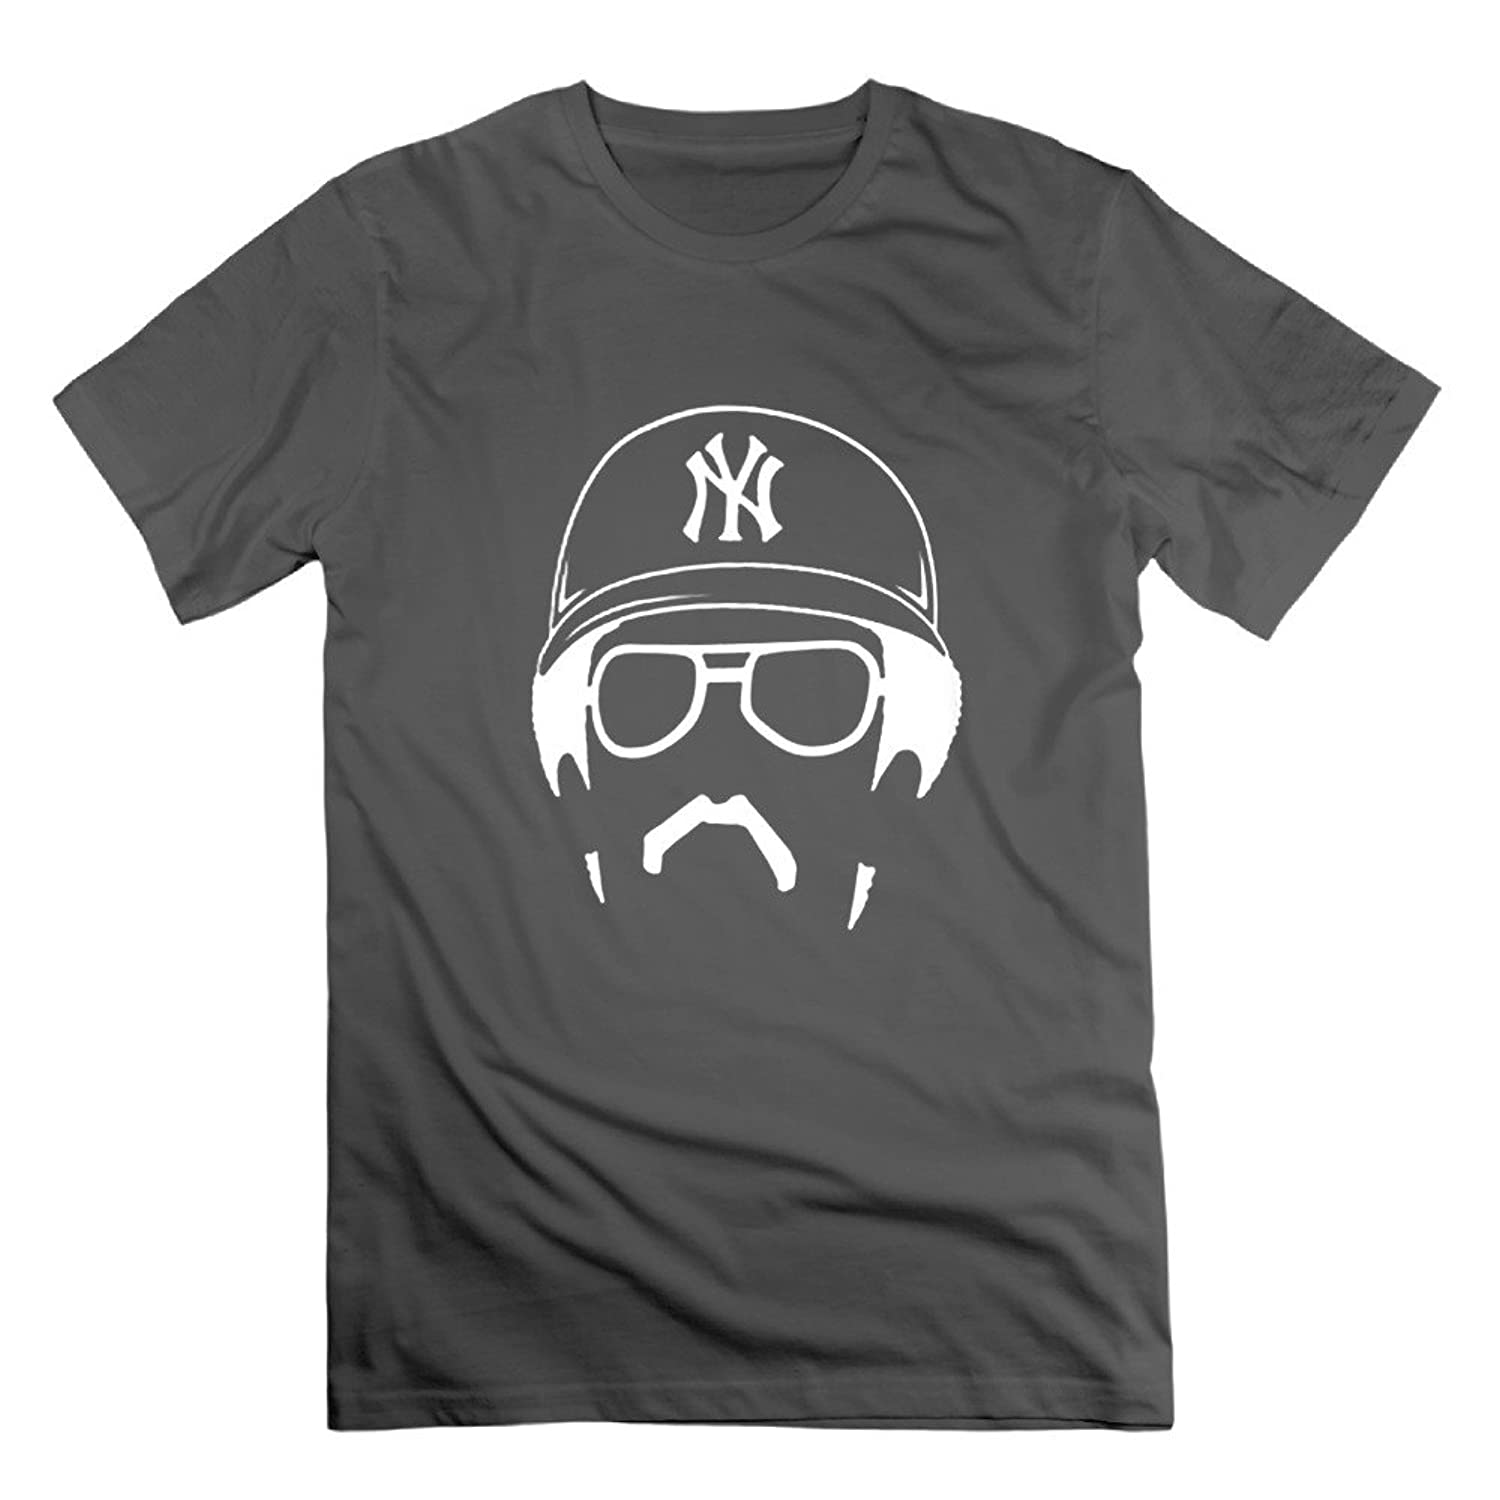 USTODAY-adults Reggie Jackson Shirt Shirt.